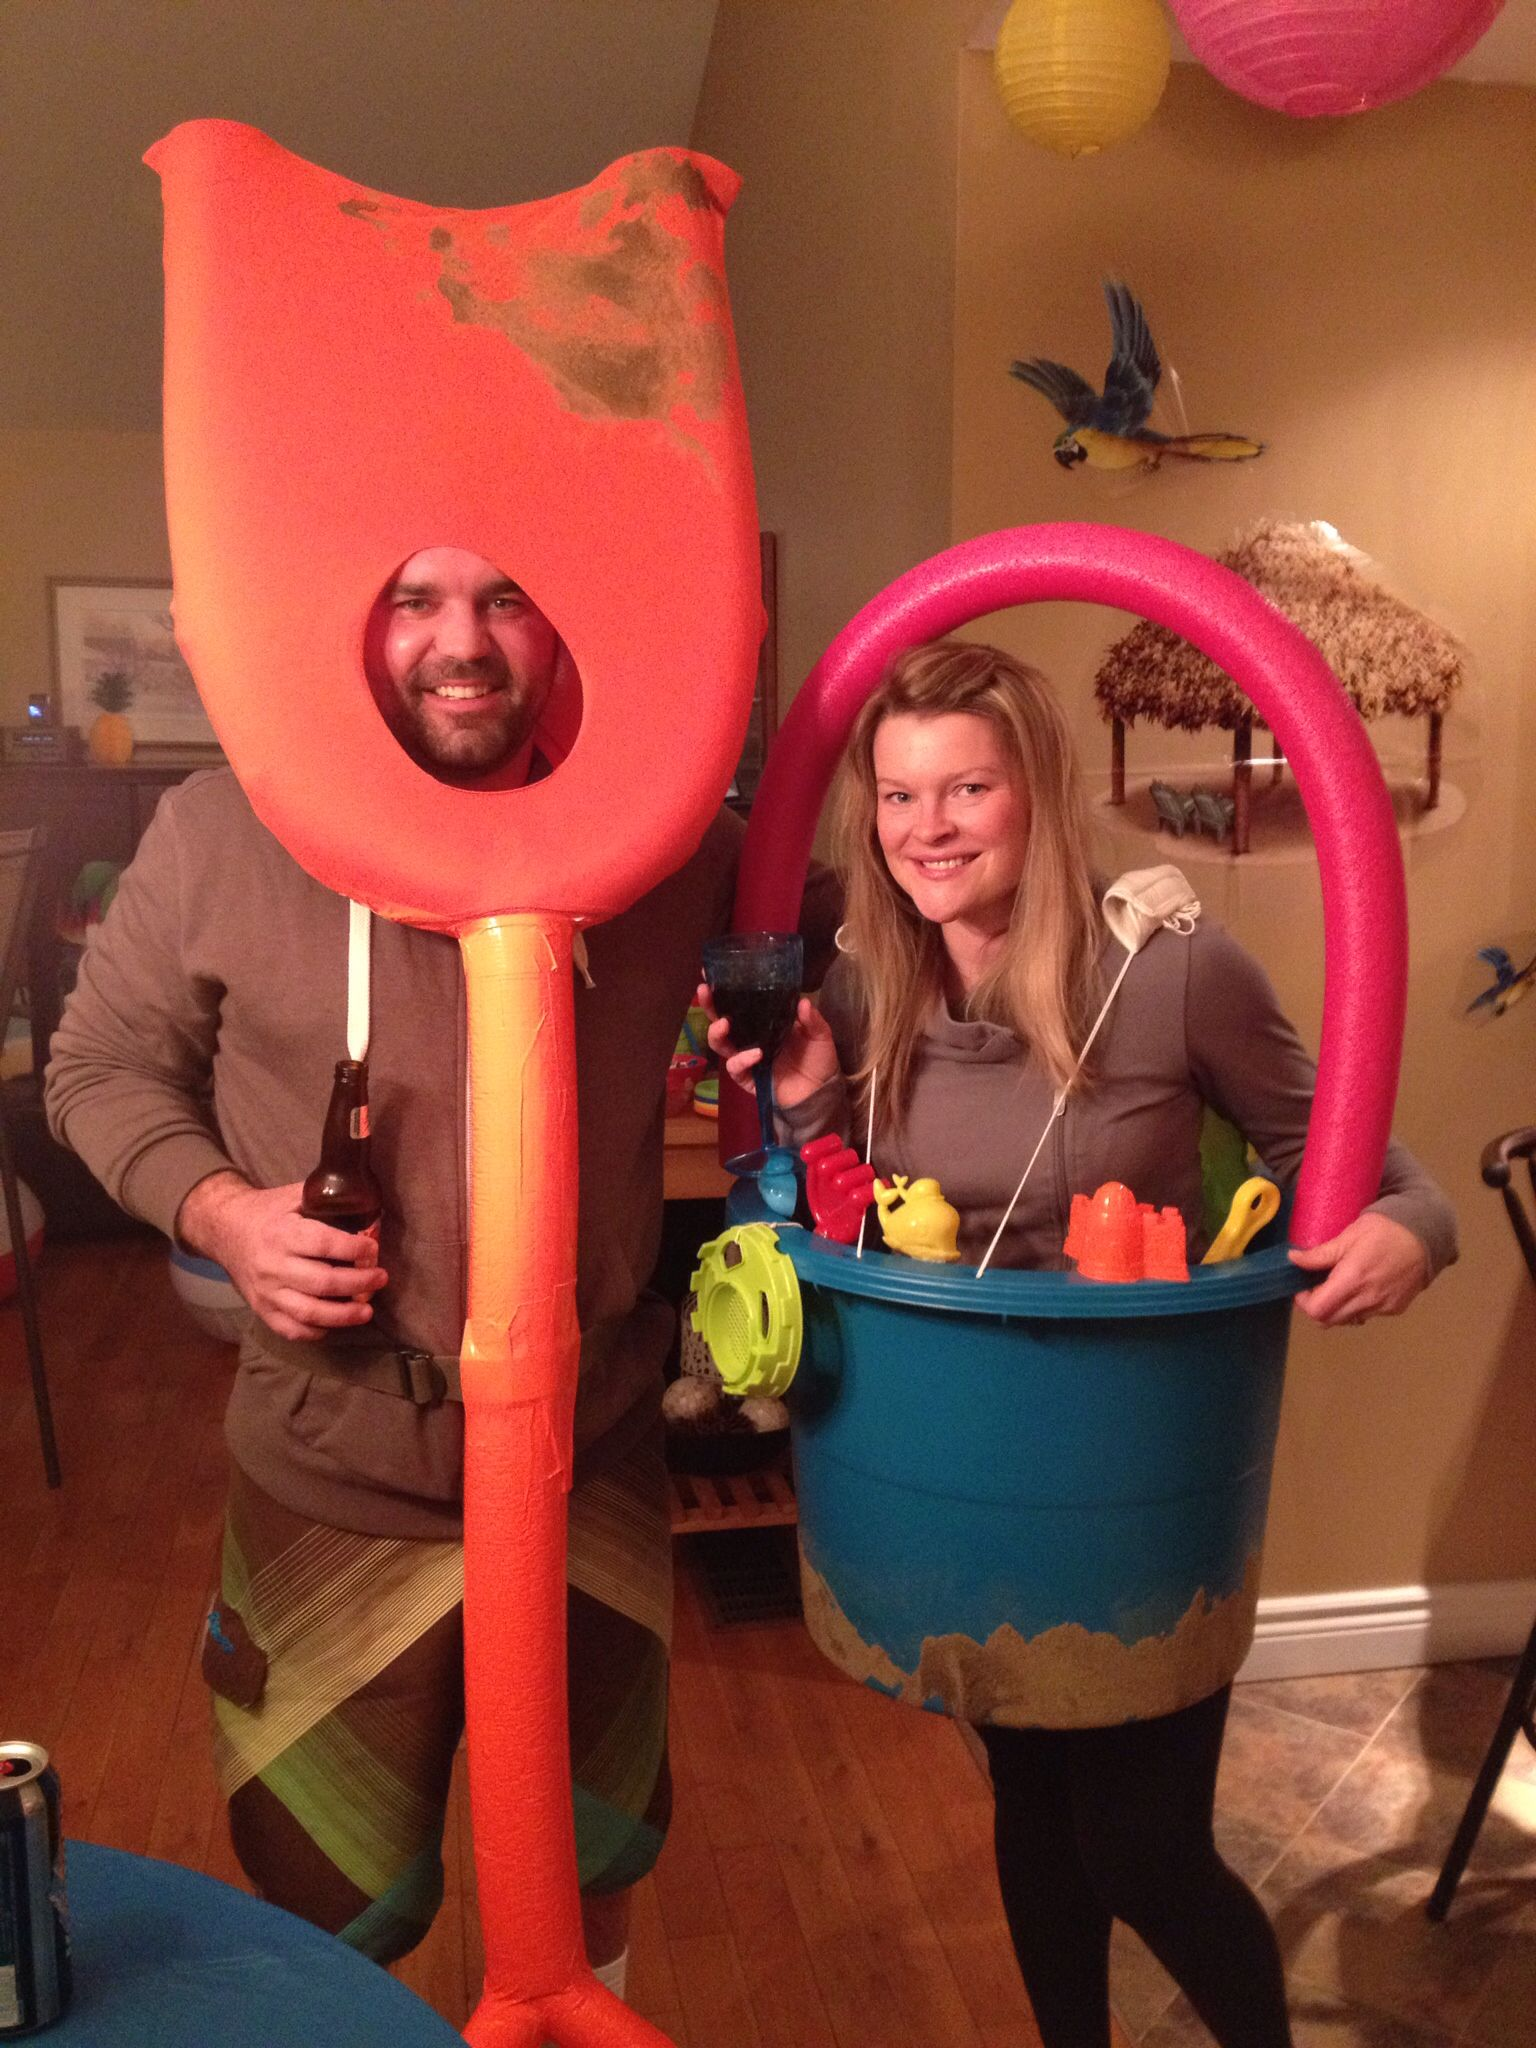 shovel and pail costumes perfect for beach theme party or halloween - Halloween Costumes Parties